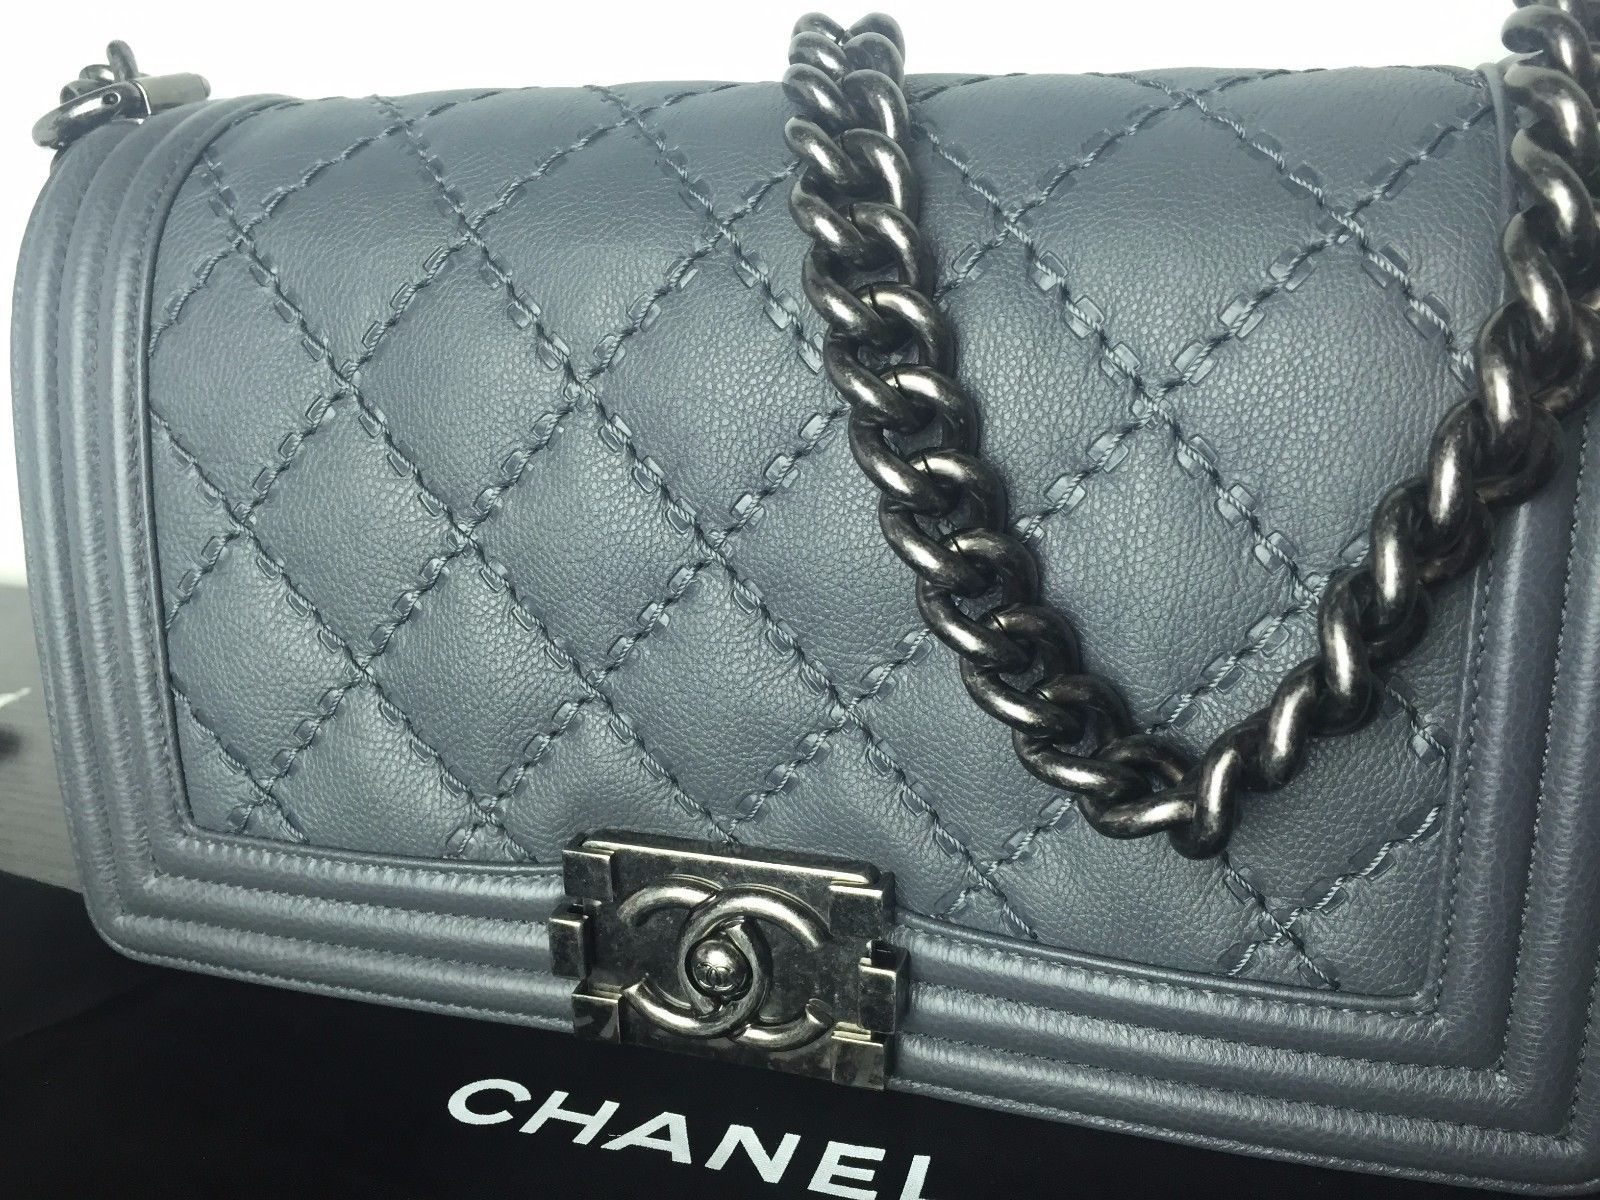 Chanel Medium Boy Bag Metallic Silver Soft Caviar Brand New | eBay